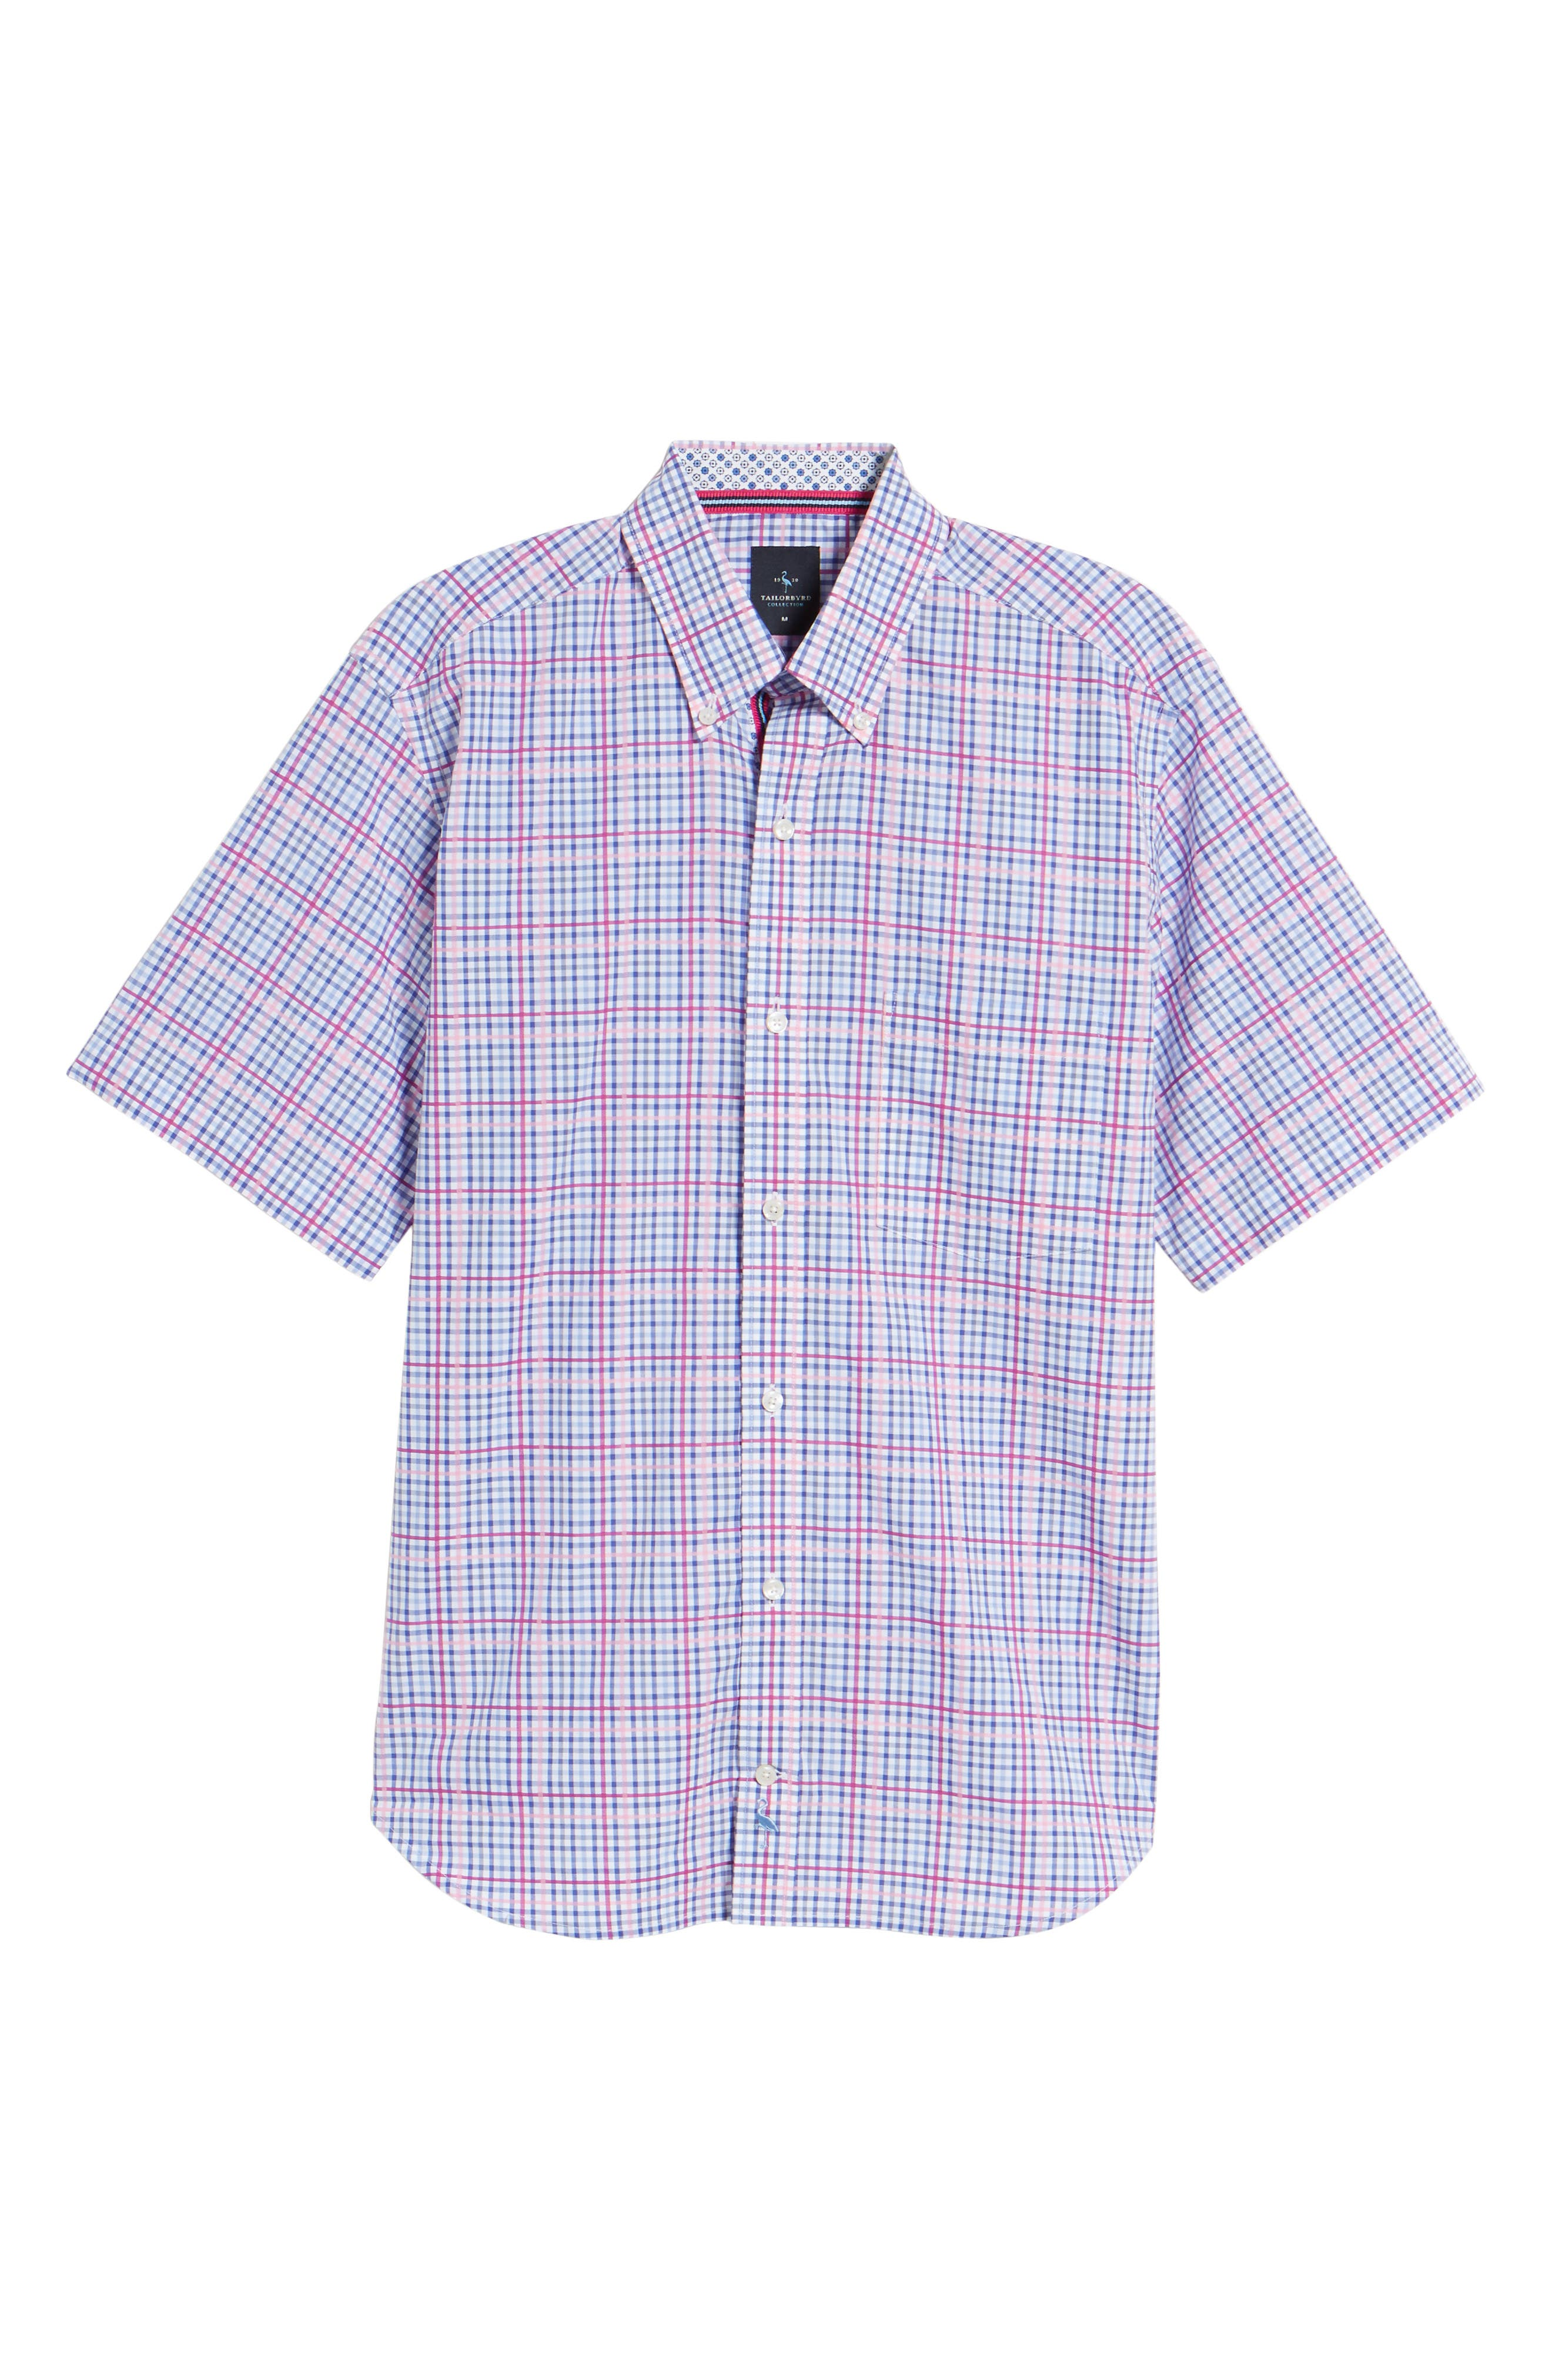 Ale Regular Fit Check Sport Shirt,                             Alternate thumbnail 6, color,                             650